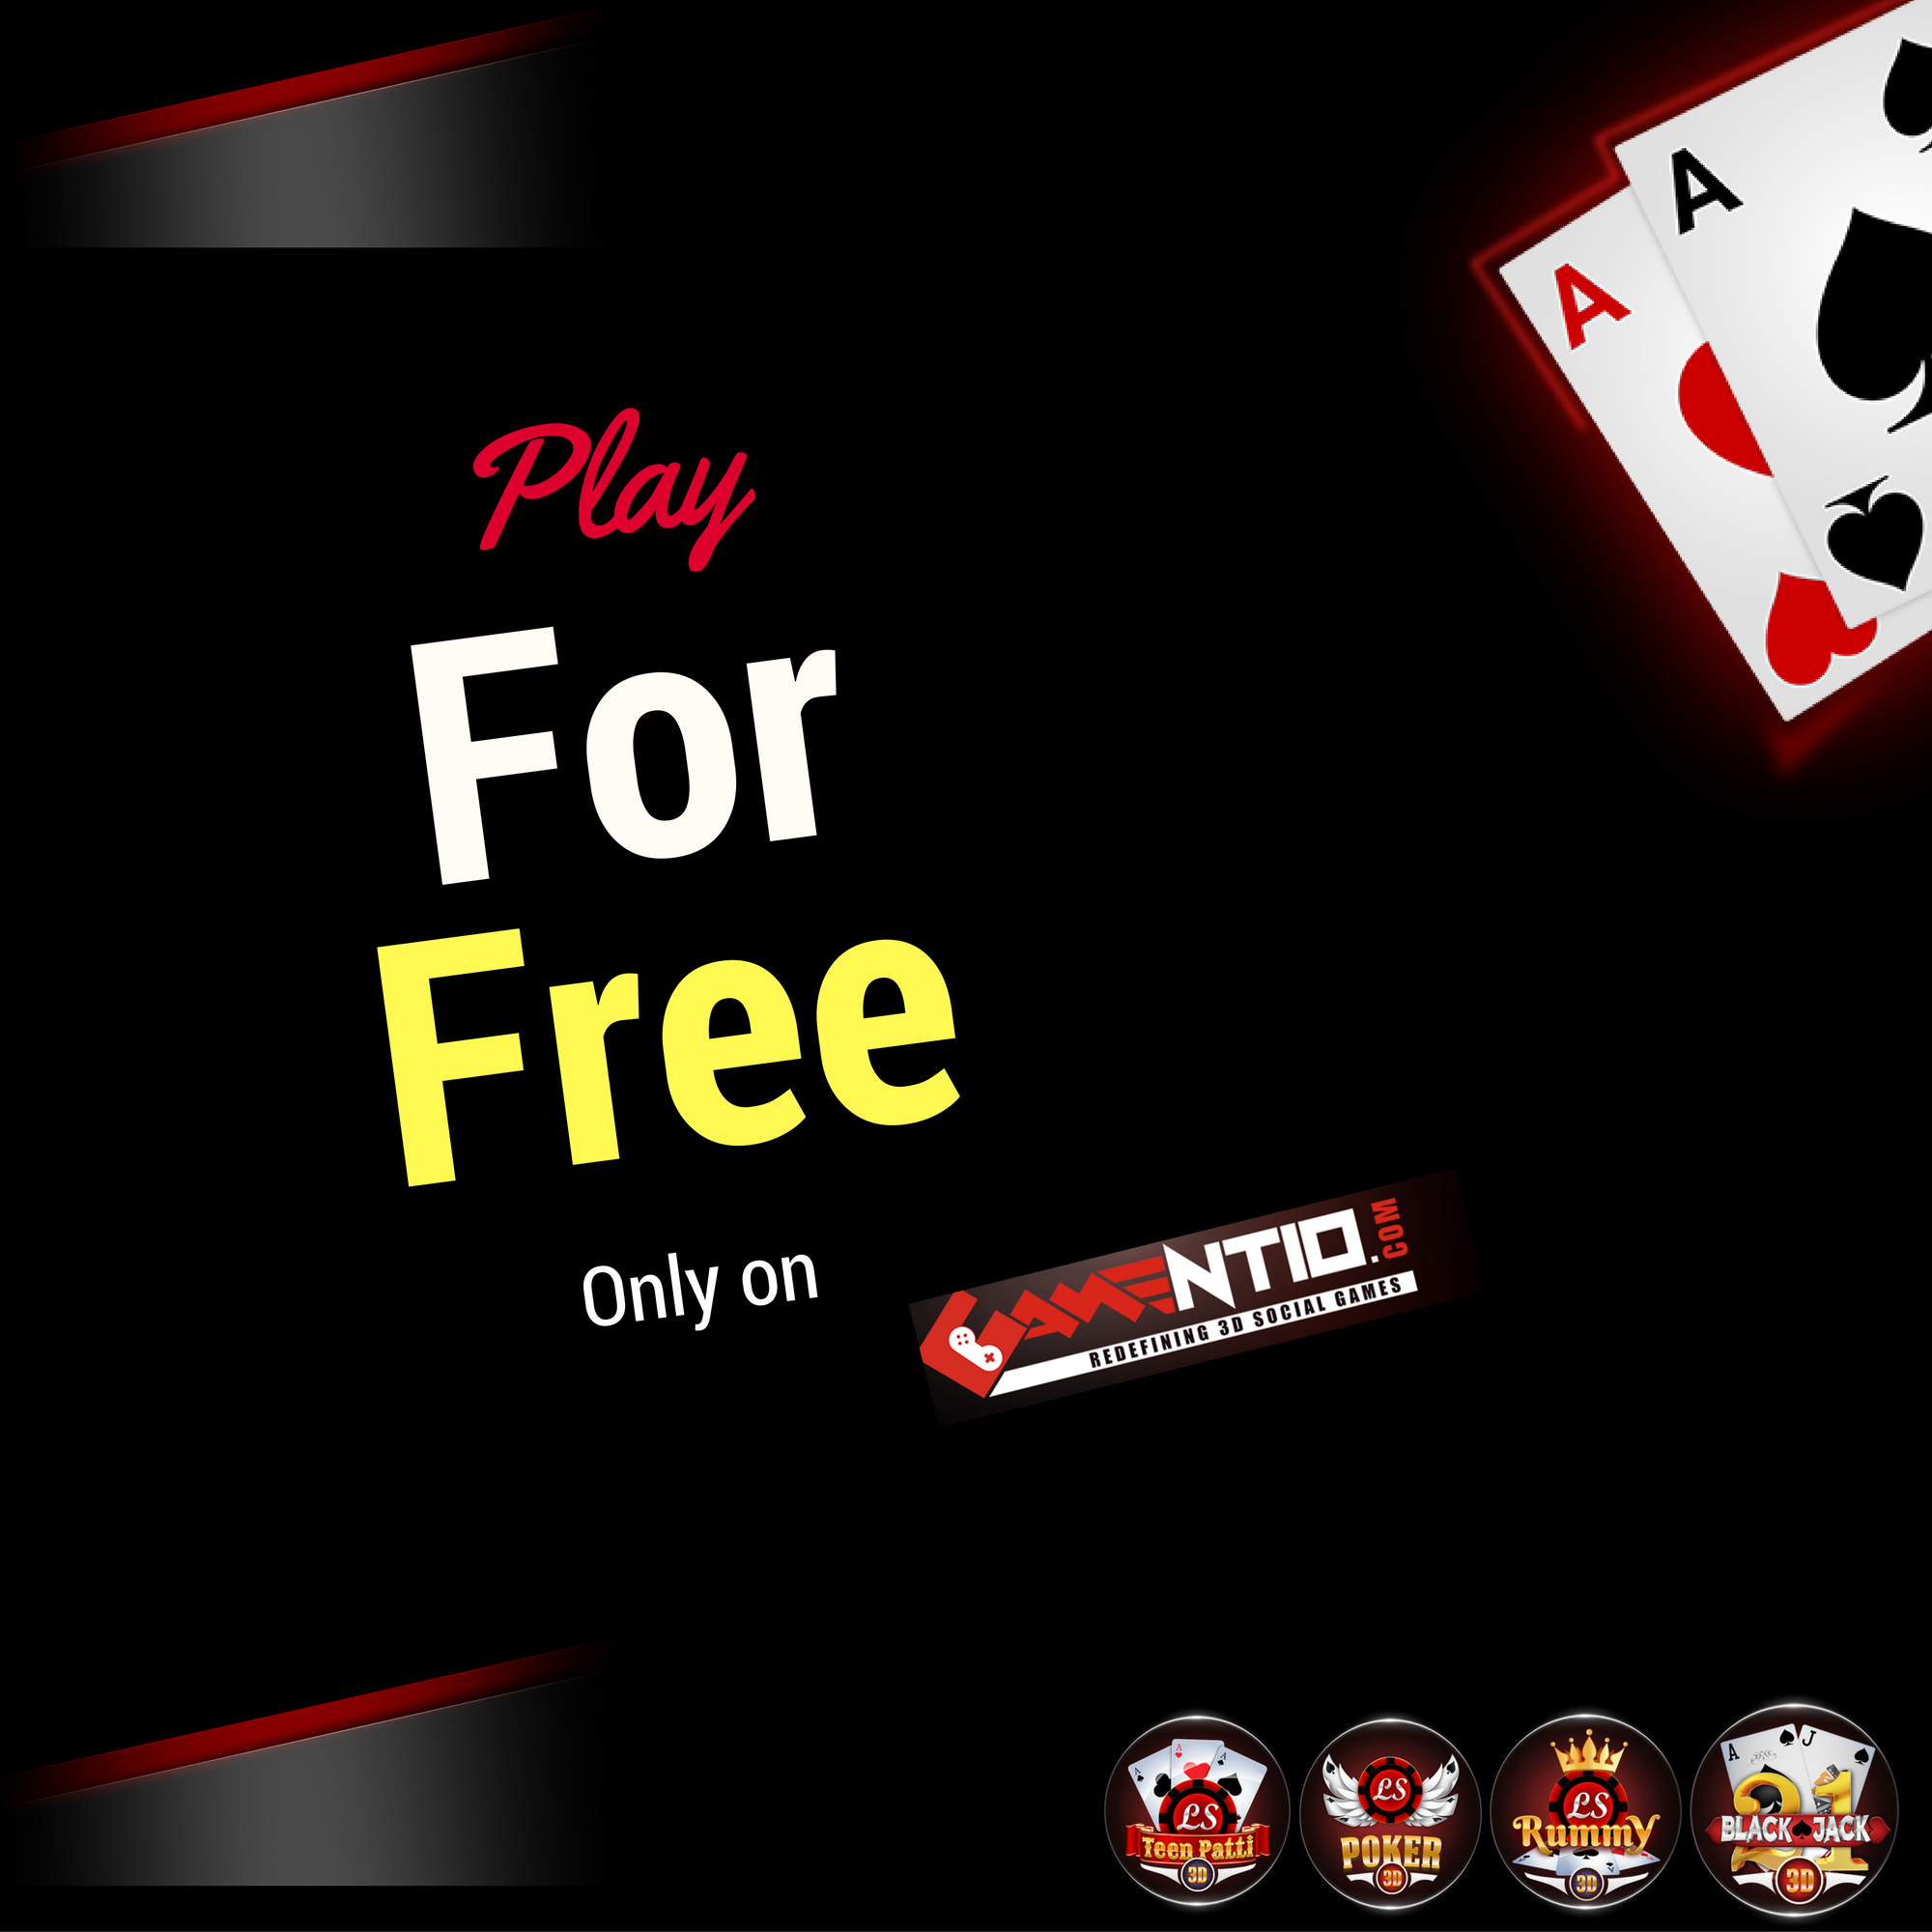 Love to play card games, so play with us only at Gamentio